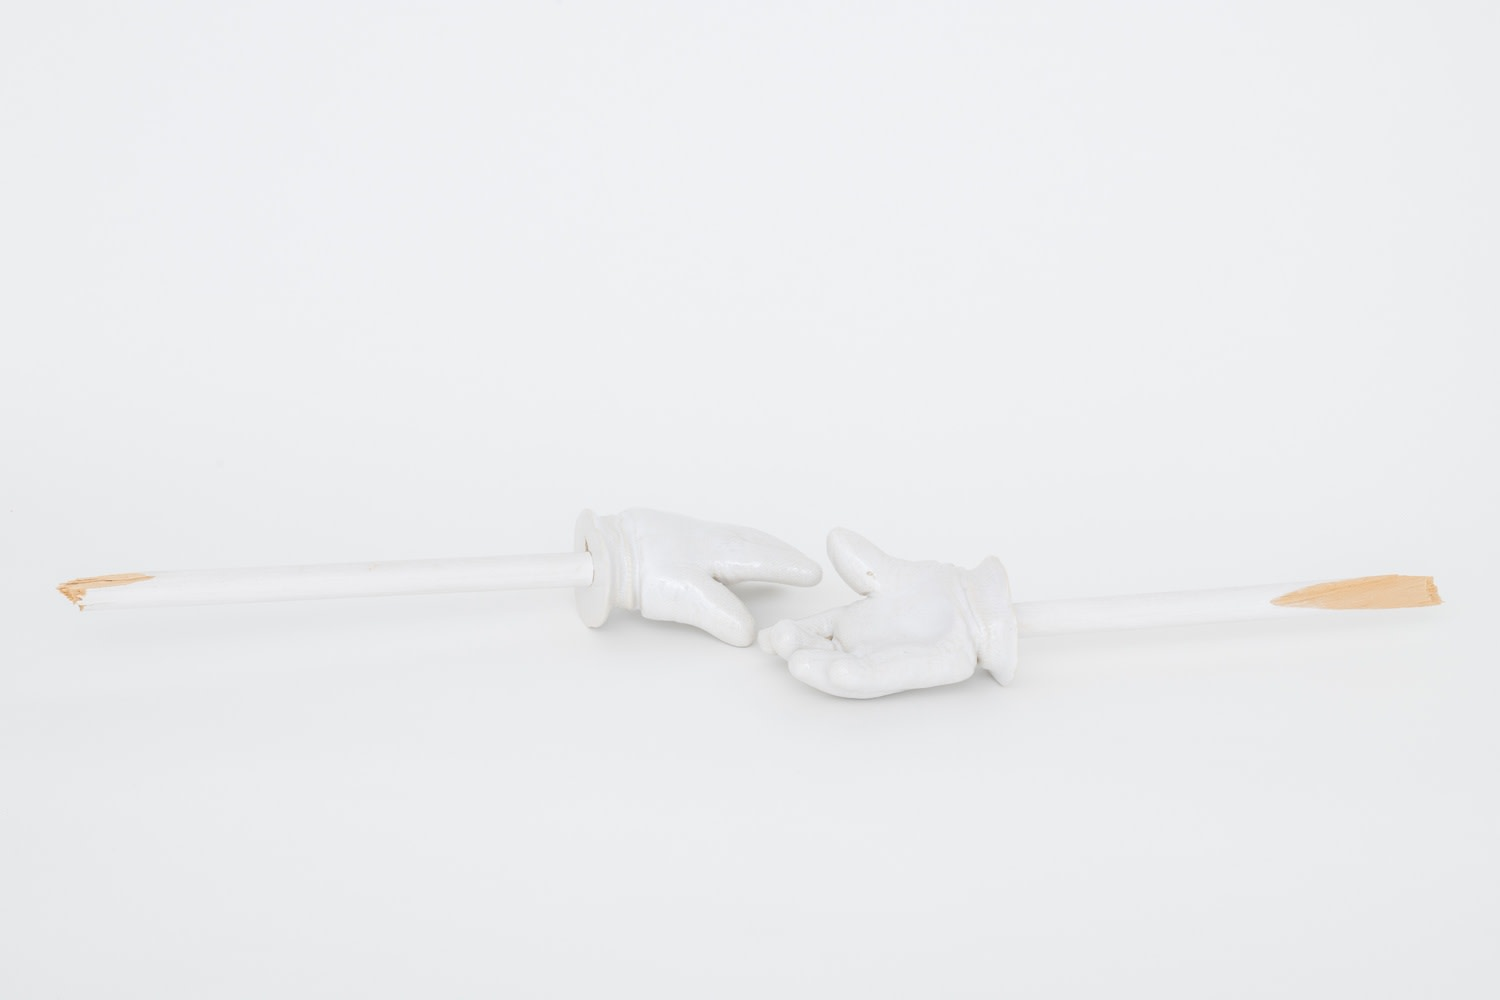 Richard Slee, Arms, 2016, Glazed ceramic with wood in two (2) parts, Part 1: 8 x 50 x 15.5 cm, 3 1/8 x 19 3/4 x 6 1/8 in, Part 2: 9 x 55 x 15.5 cm, 3 1/2 x 21 5/8 x 6 1/8 in